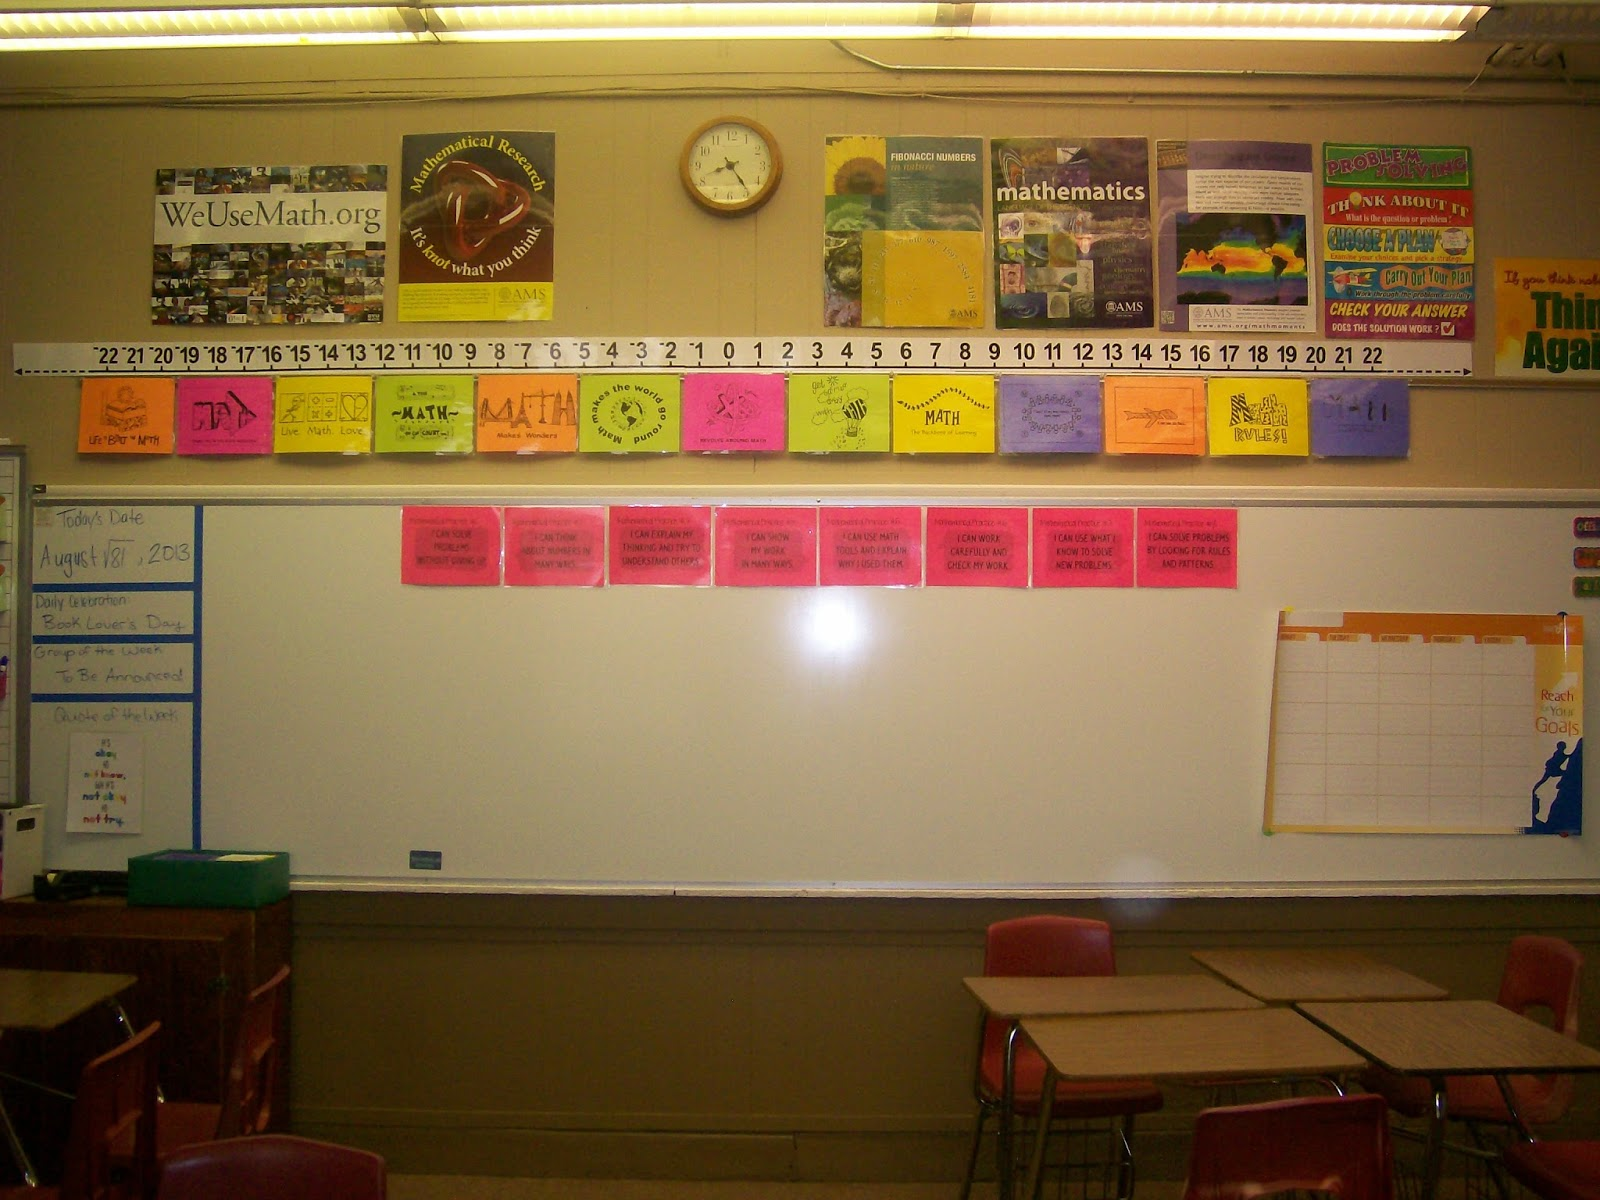 Classroom Game Ideas For High School : Math activities for middle school classroom i want to